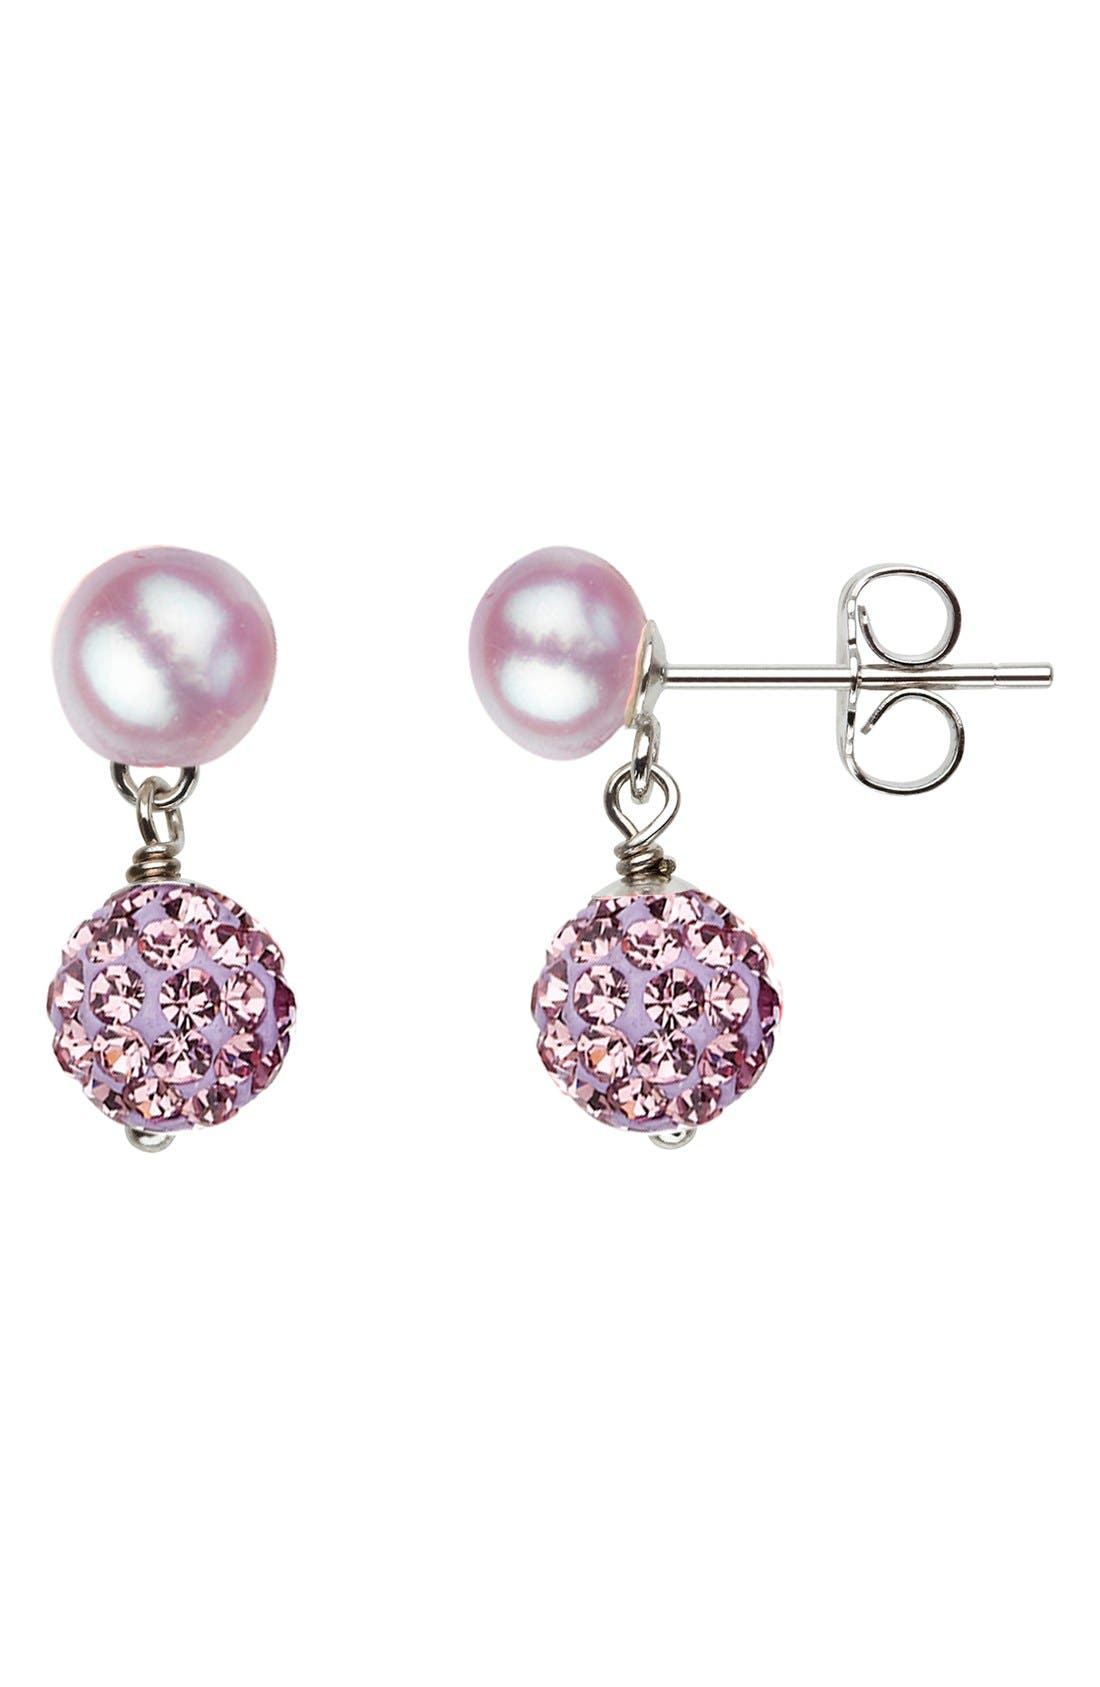 Crystal & Freshwater Pearl Earrings,                             Main thumbnail 1, color,                             500